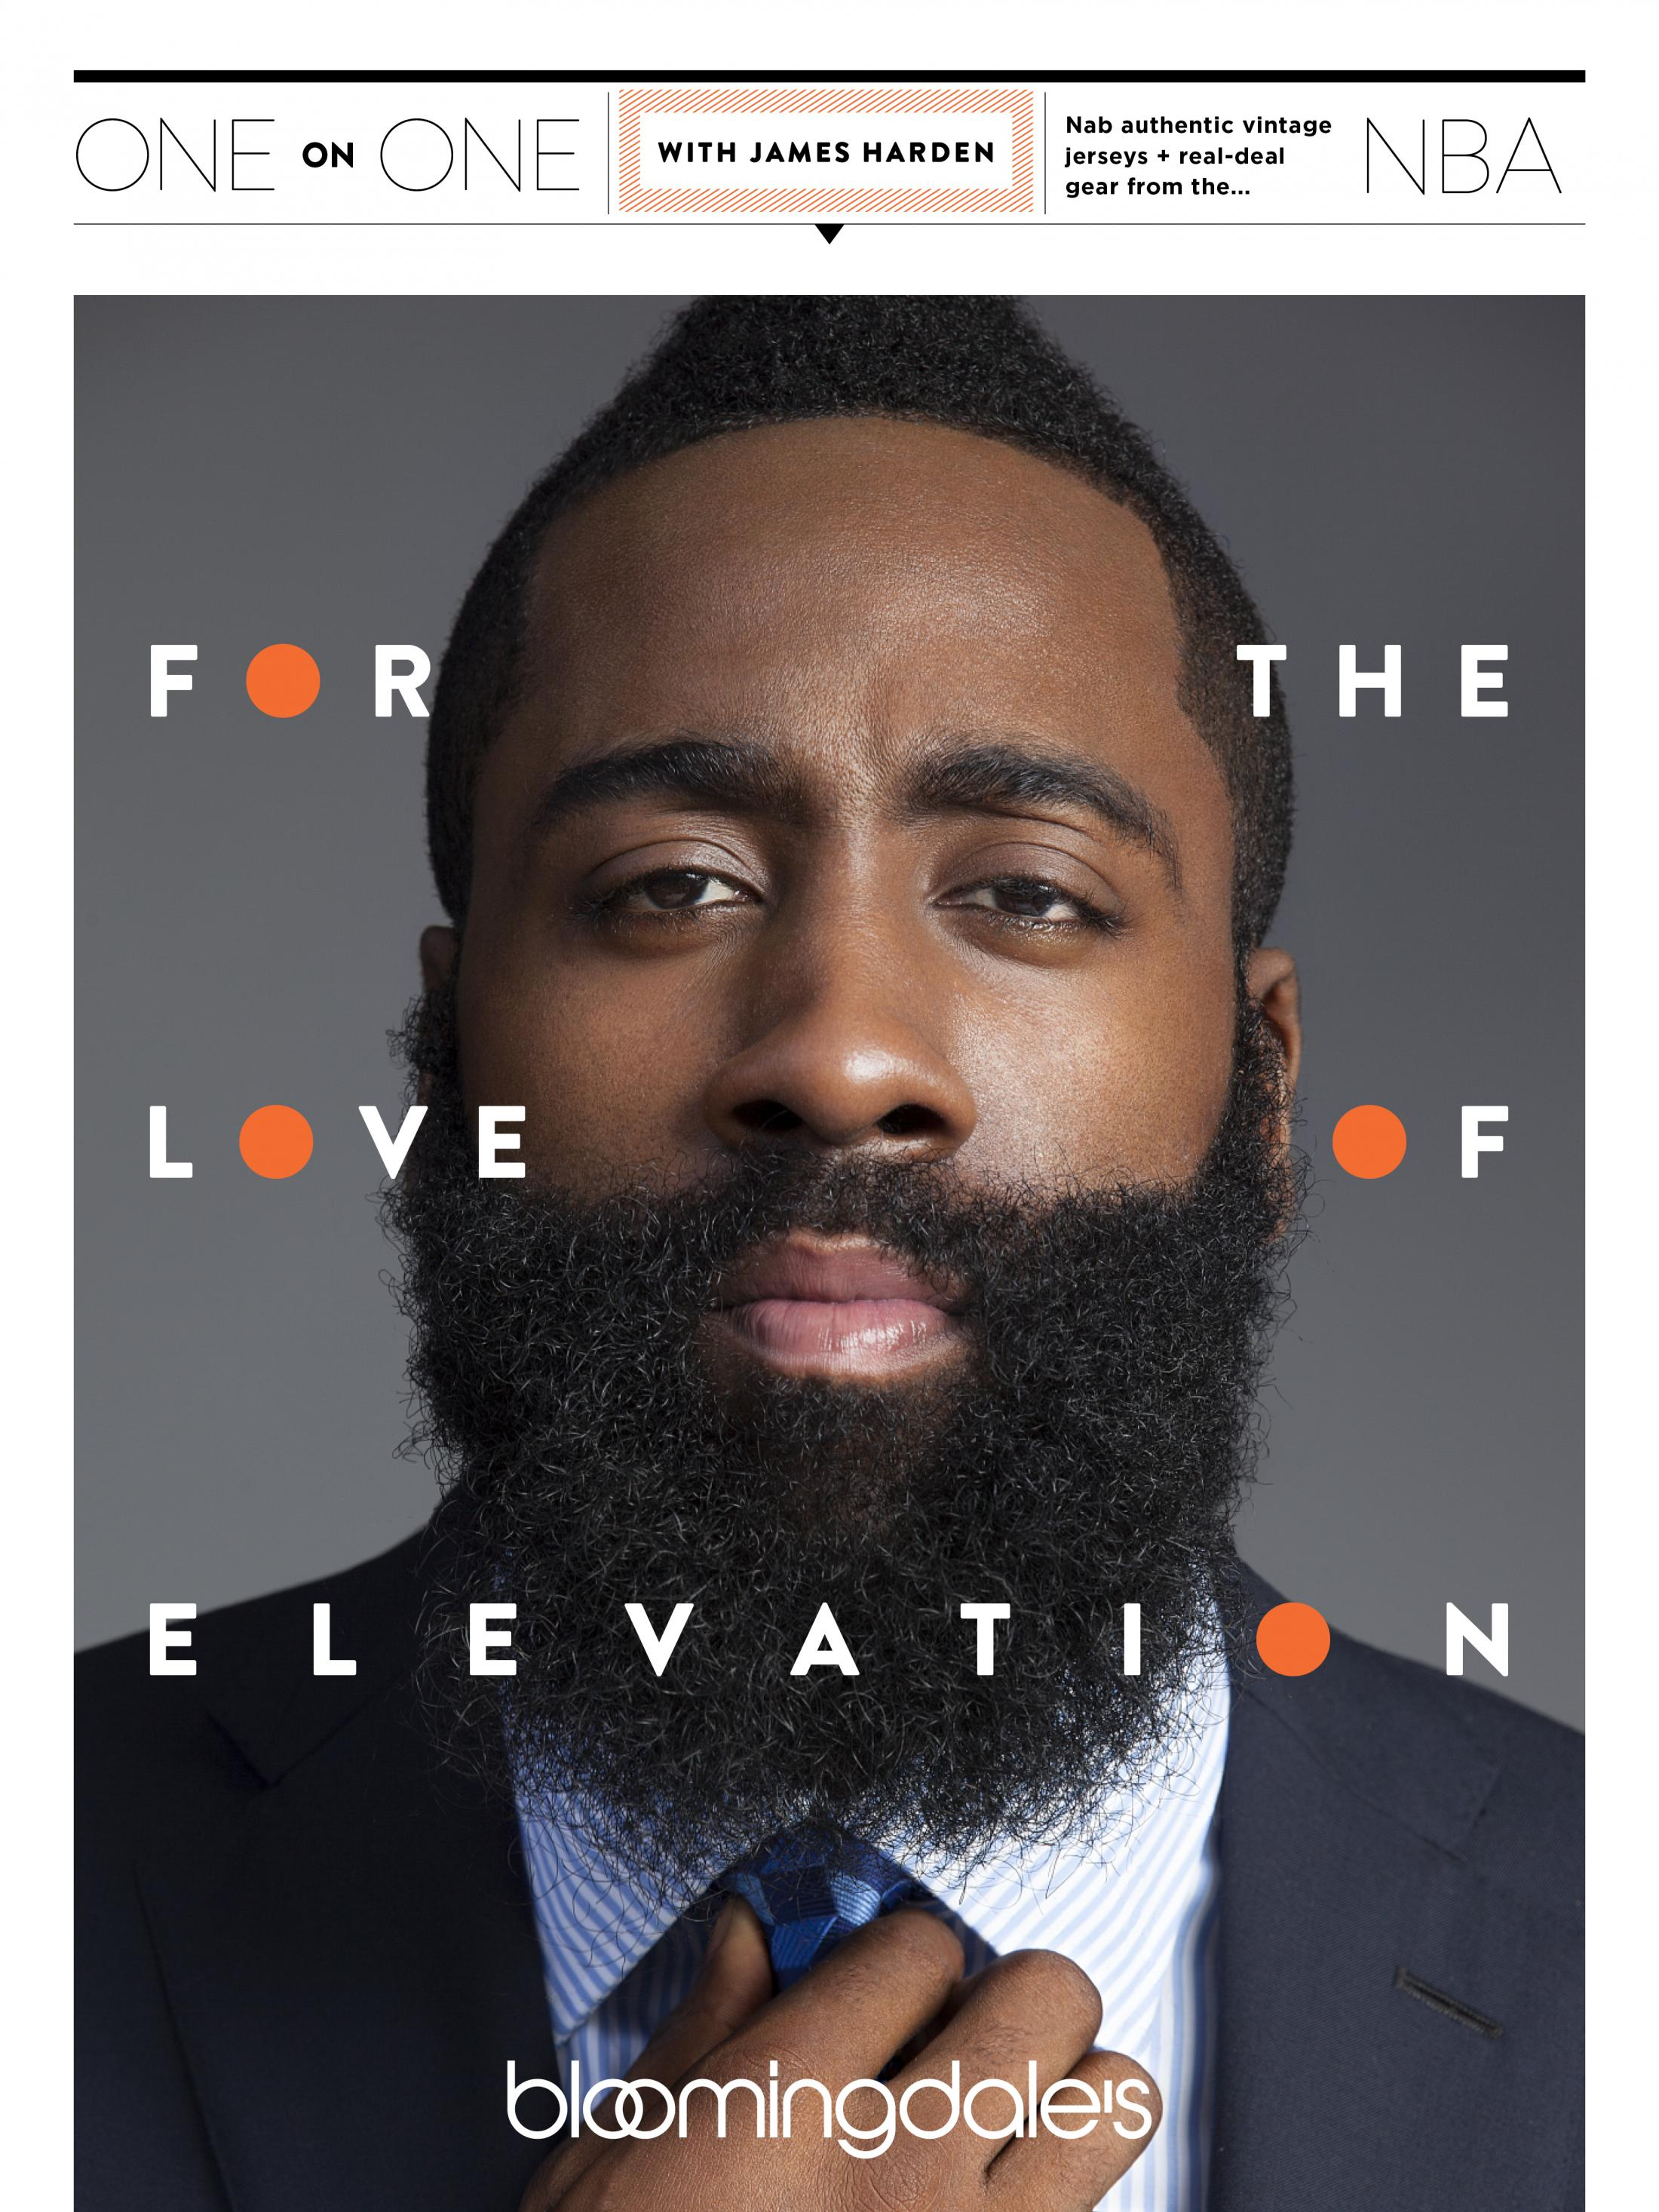 Thumbnail for Bloomingdale's Celebrates NBA All-Star Game with NBA Shops and Basketball Style Icon James Harden